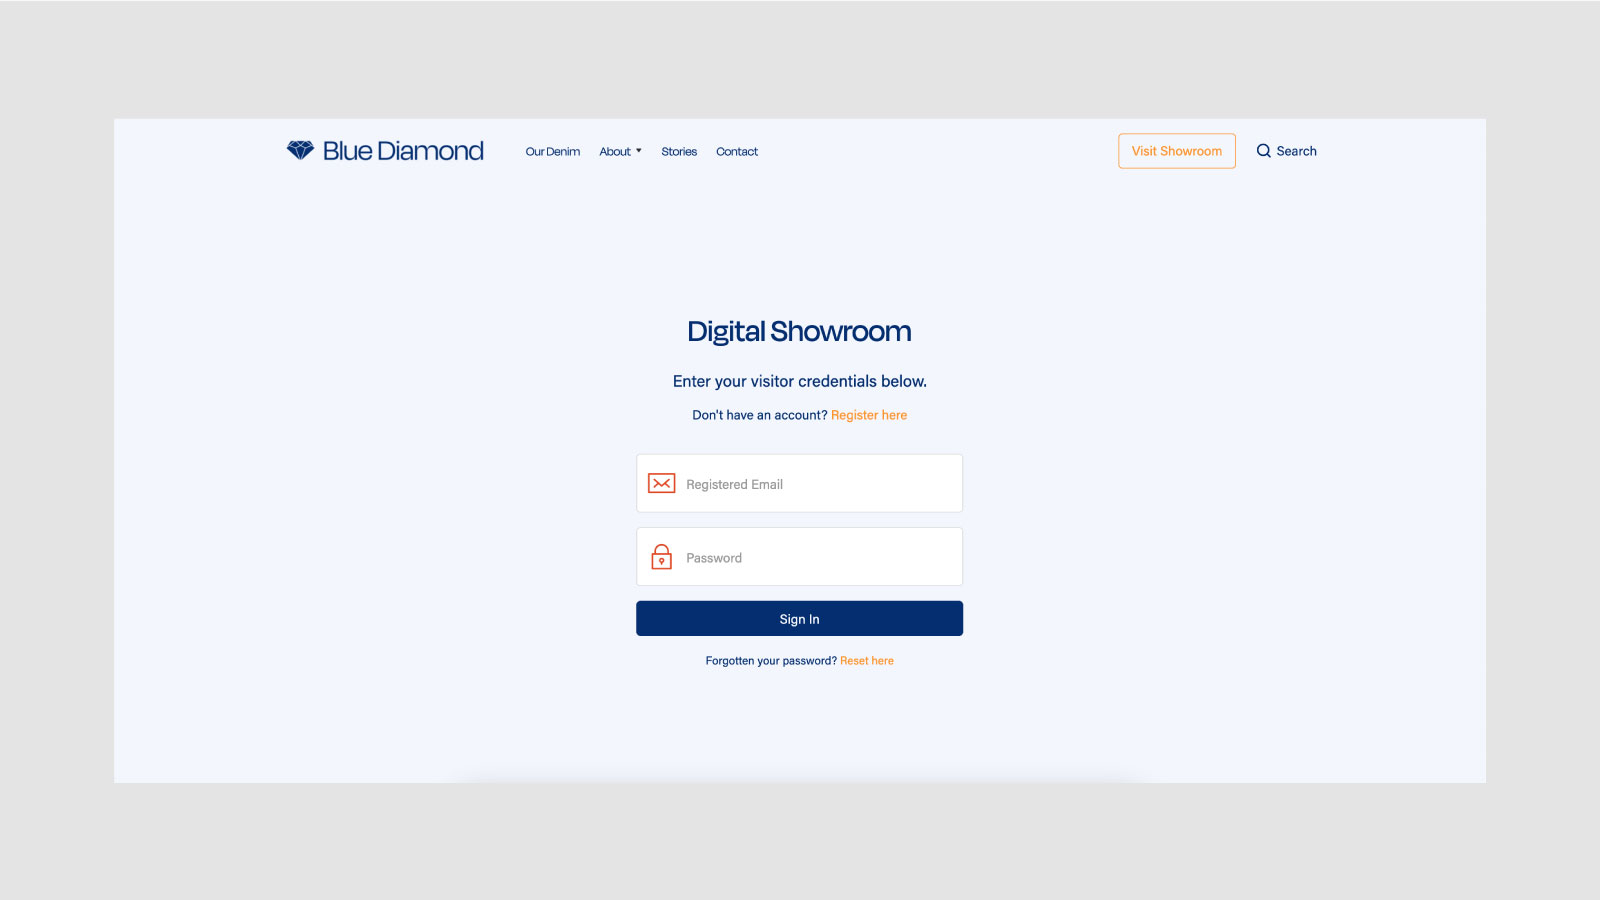 Blue Diamond Digital Showroom Sign In Page